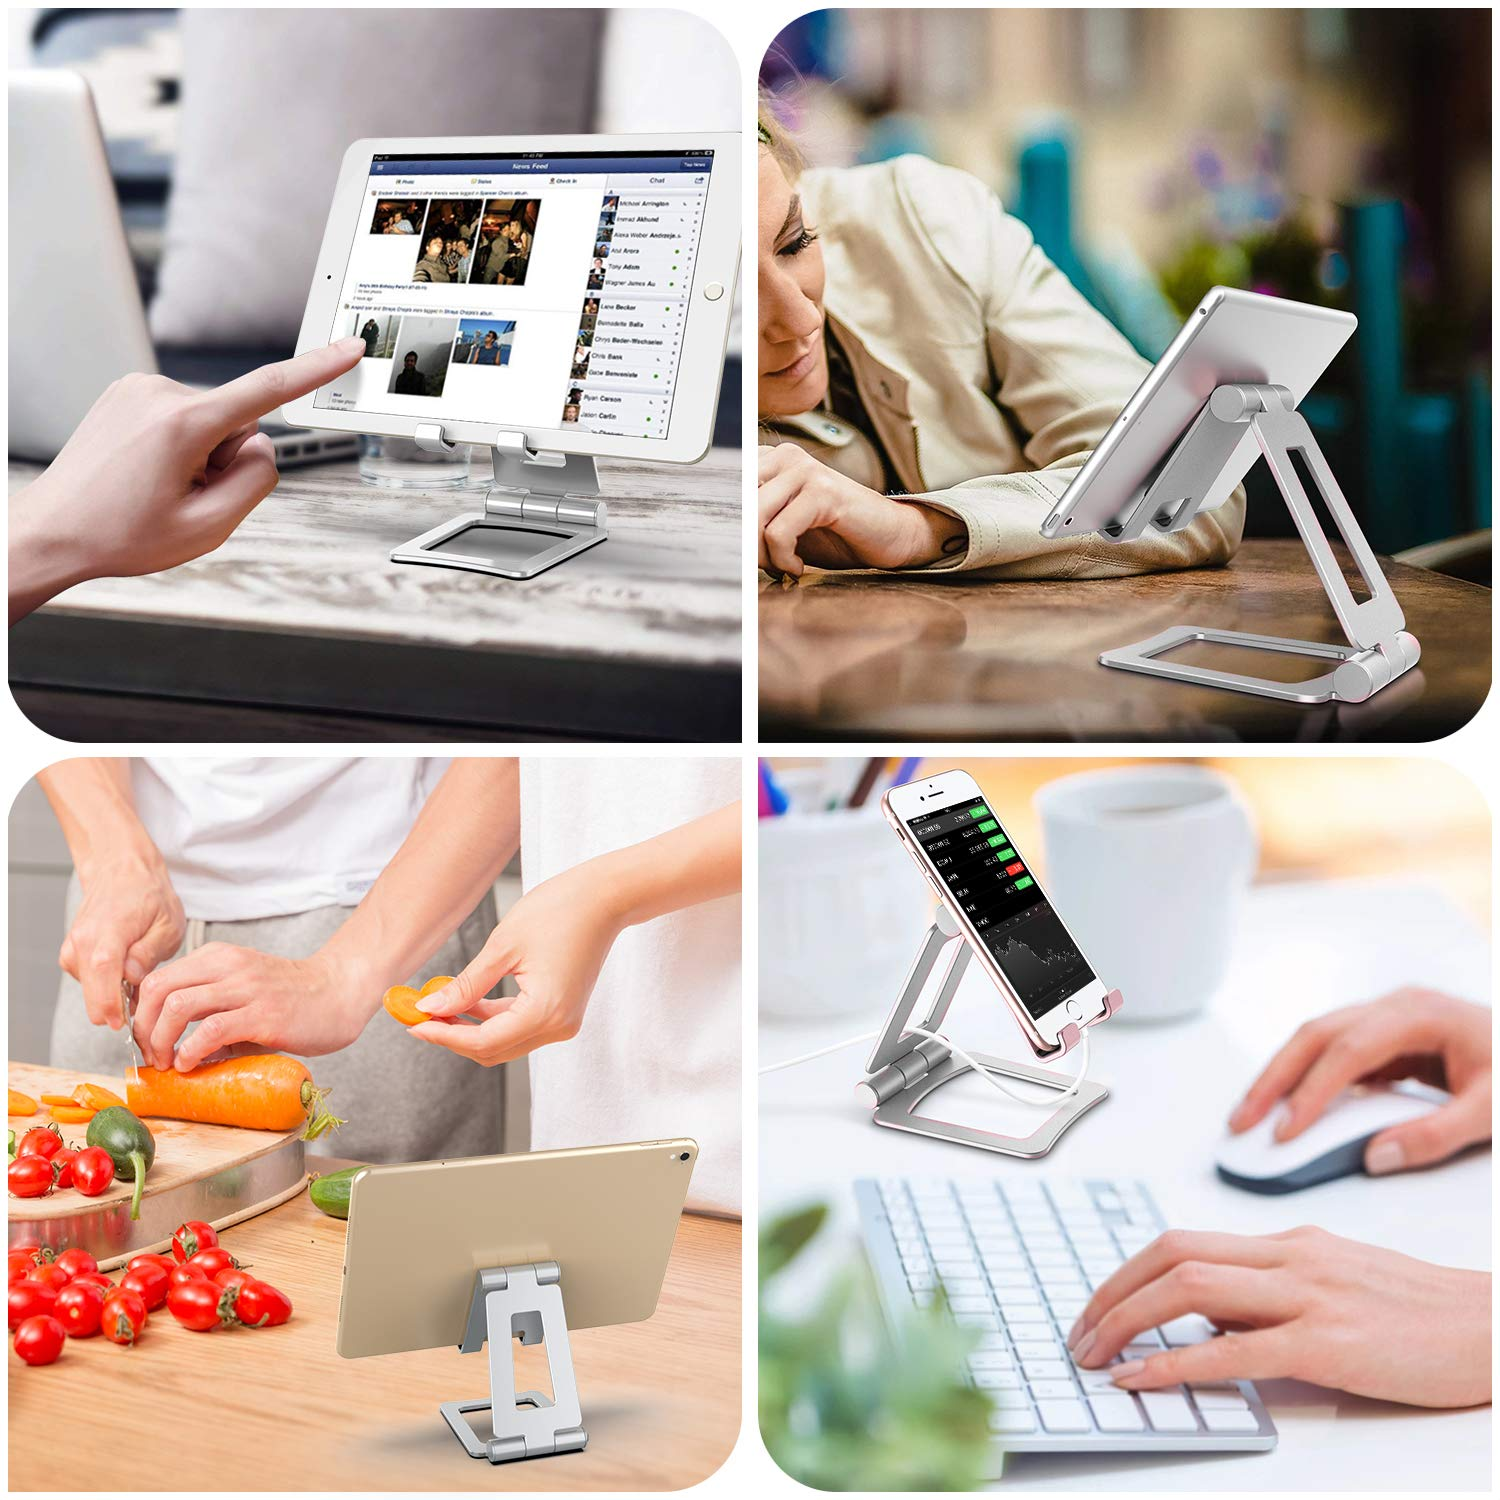 Multi Angle Stand Folding Tablet Holder Grey Universal Tablet Stand Adjustable Dual 270 Degree Portable Desktop Stiff Tablet Holder Stand Desktop Mount Phone Dock Swivel Streits